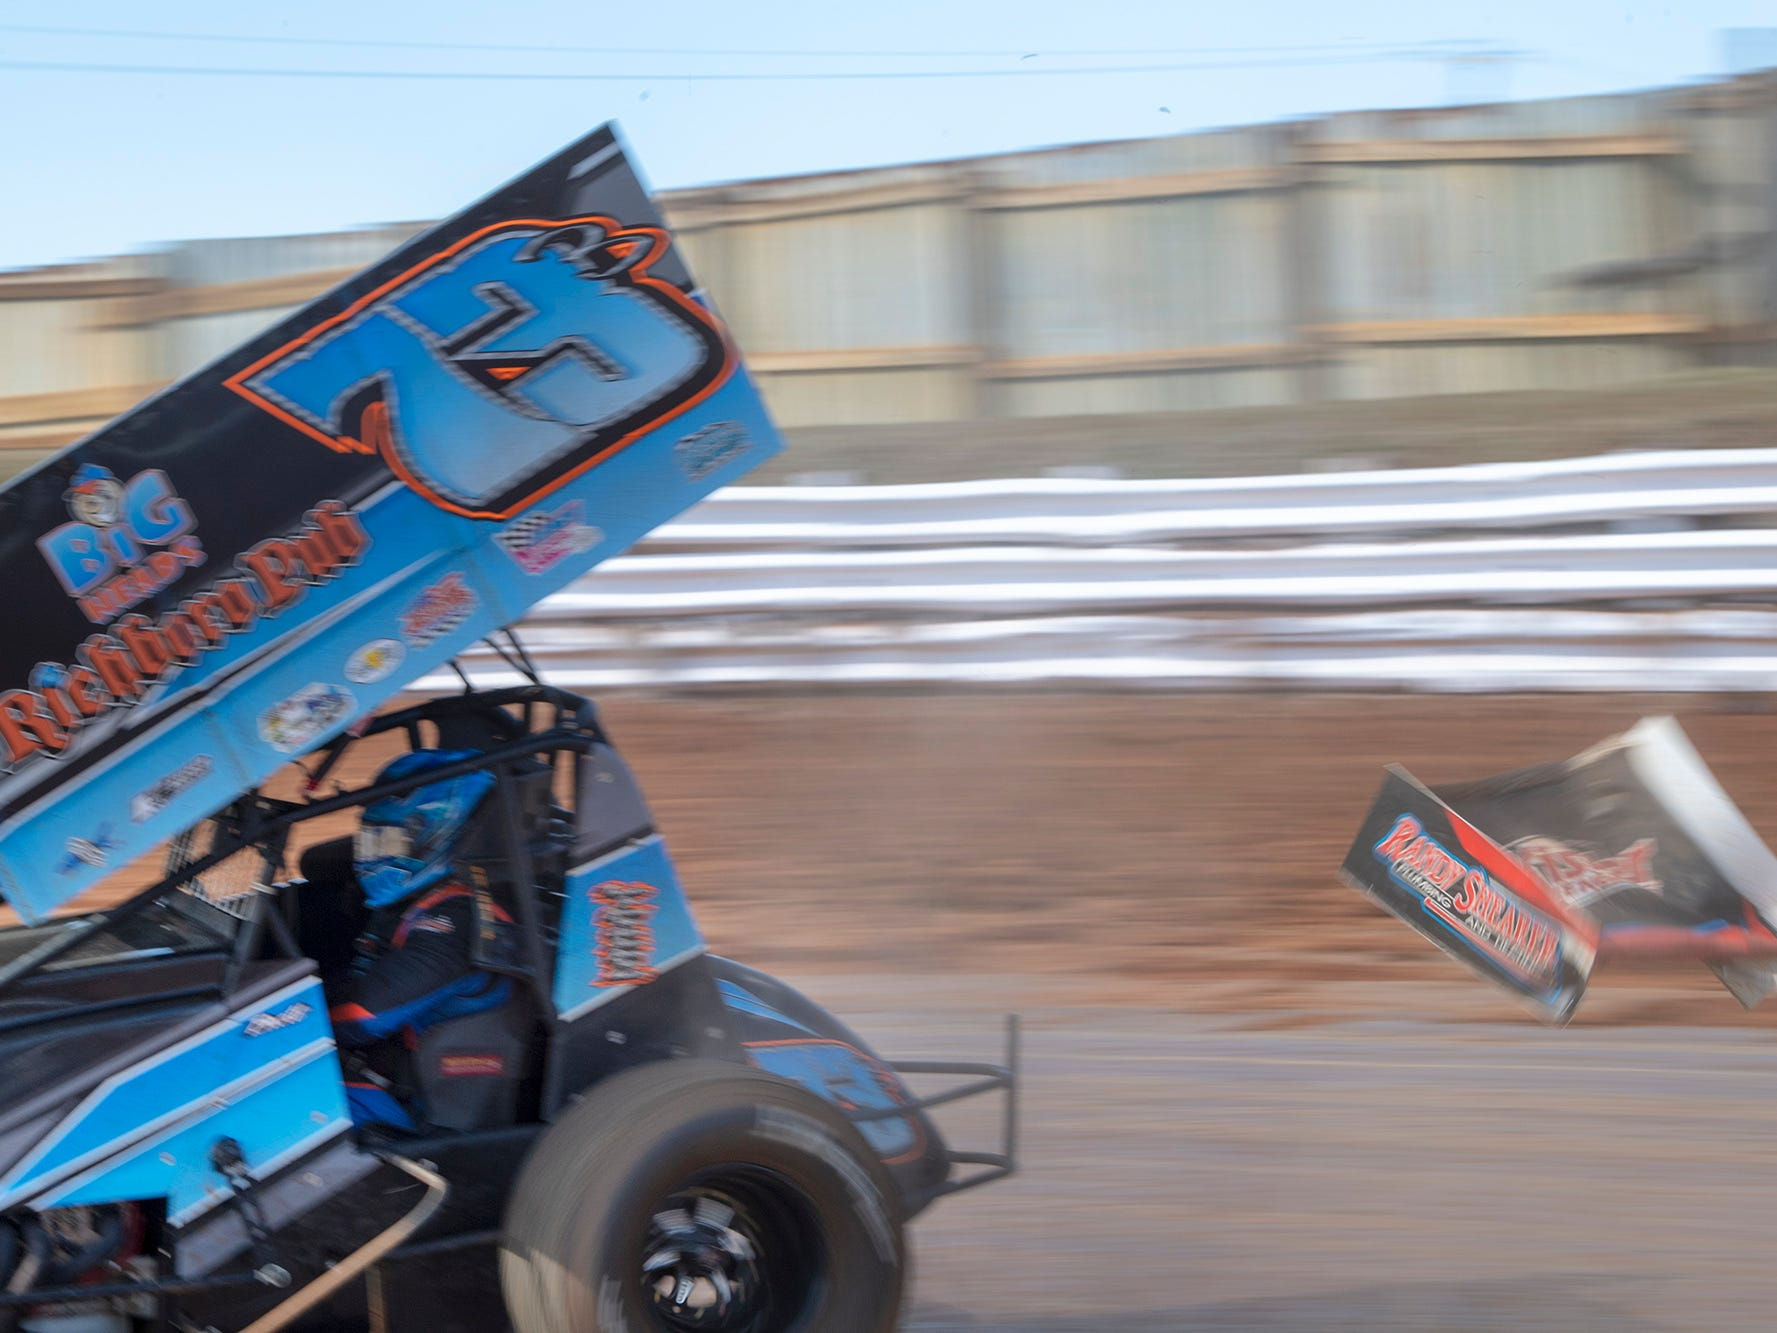 A piece of another car flies by the #73 car driven by Brett Michalski after collision in a turn during the Williams Grove season opener for 410 sprints Sunday March 17, 2019.